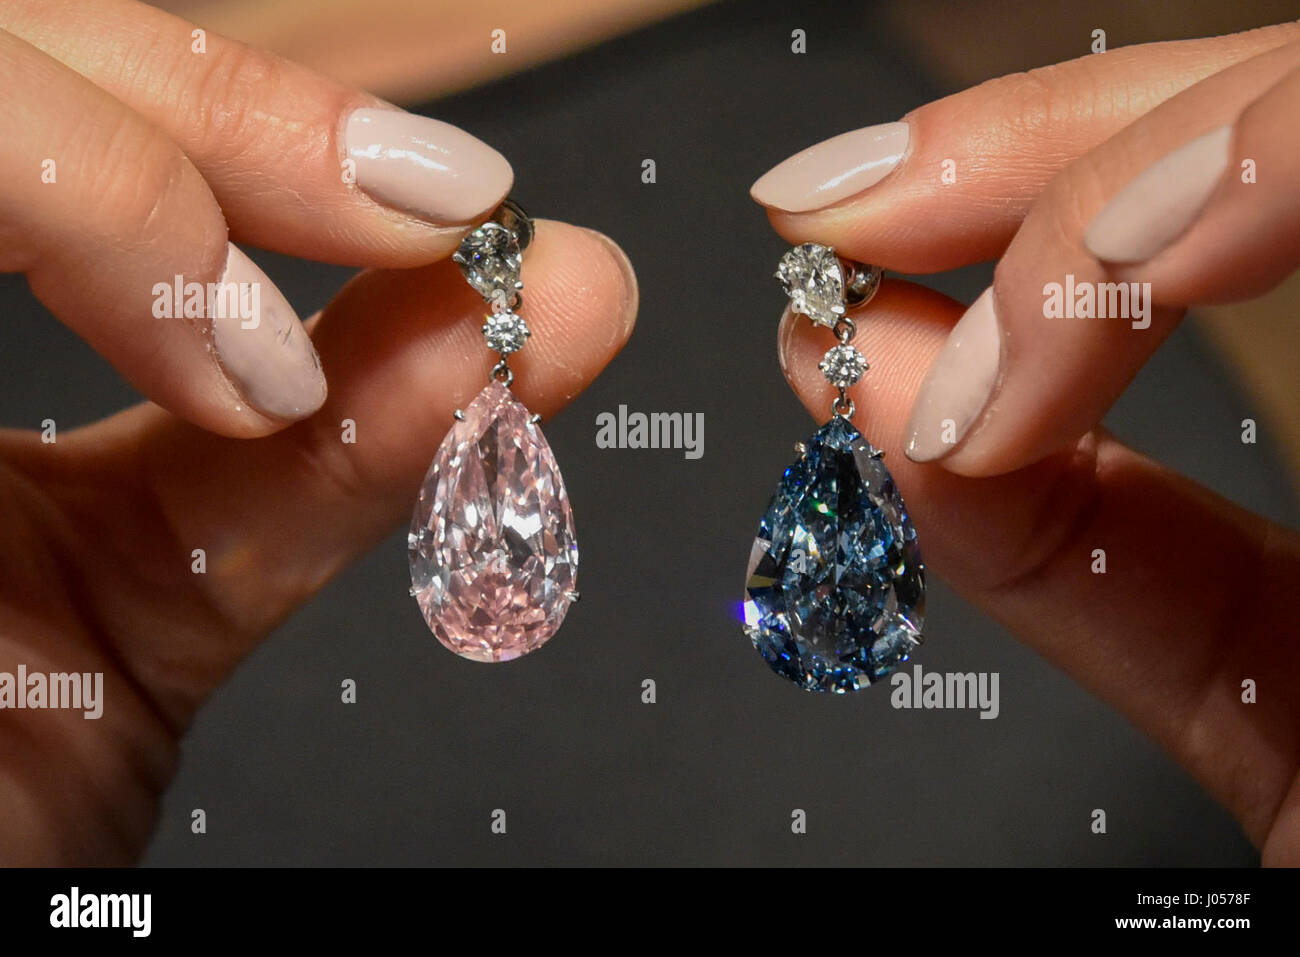 earrings meet up s artemis sold lifetime likely the be world make of at auction blue and pair ever to most apollo in a worlds pink this expensive diamond once